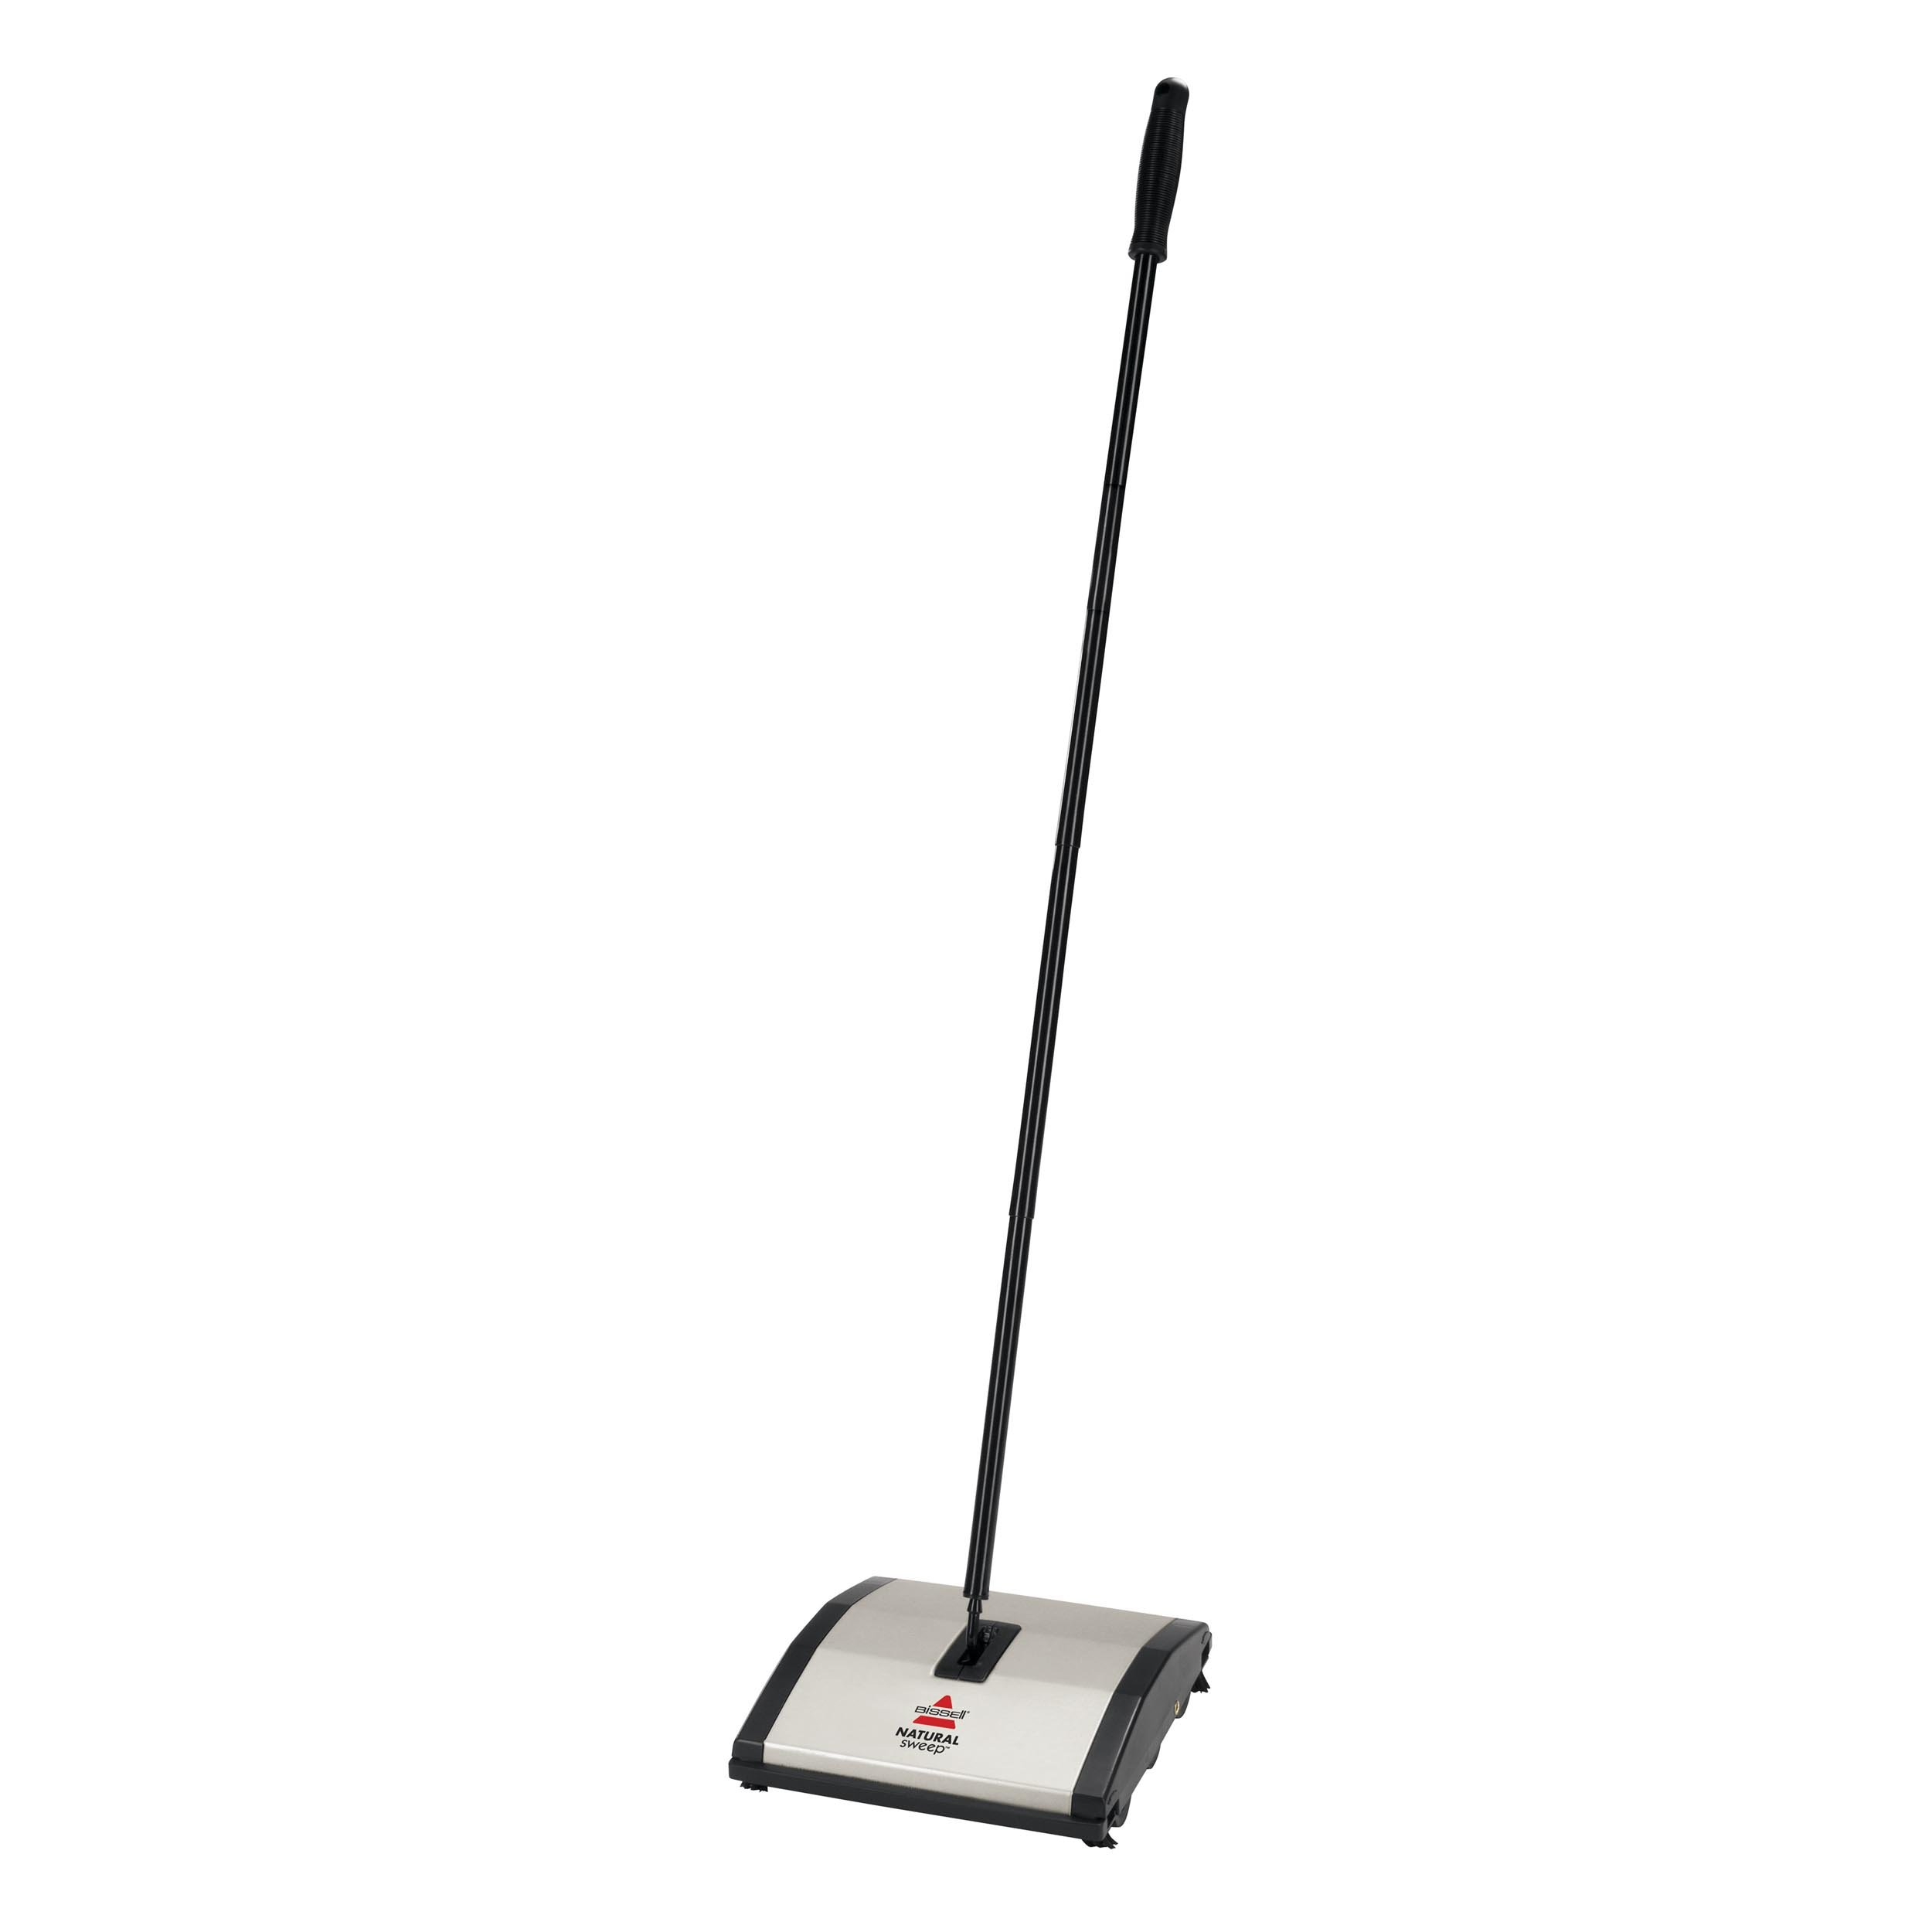 Bissell Natural Sweep Carpet and Floor Sweeper with Dual Brush Rotating System and 4 Corner Edge Brushes, 92N0A by Bissell